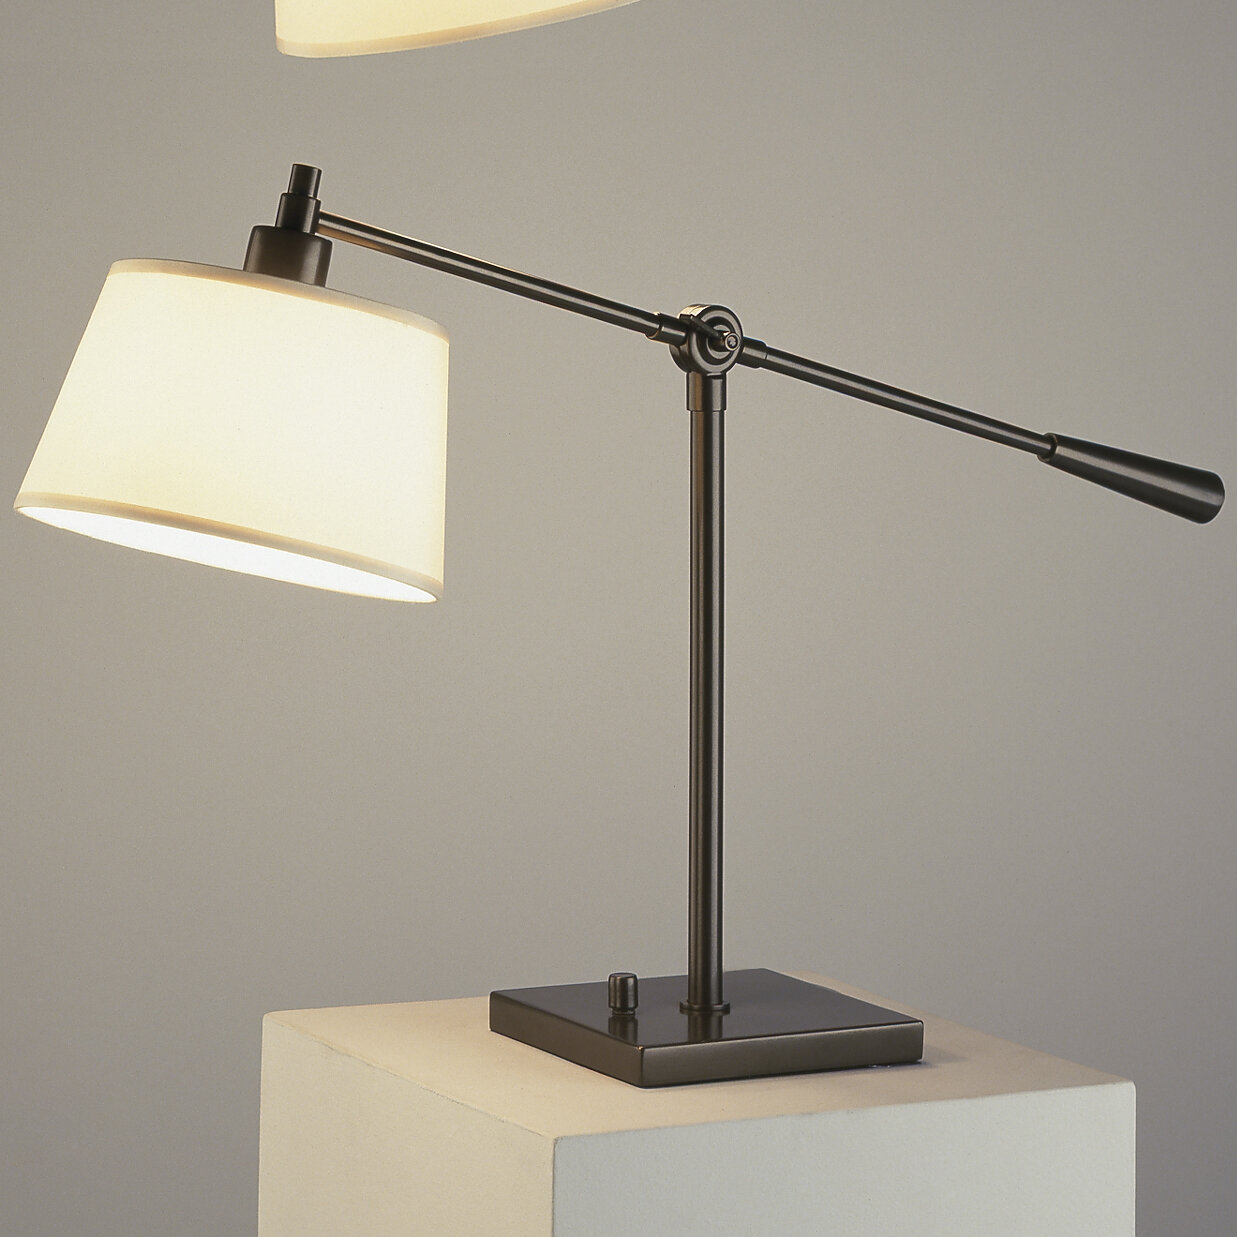 Robert Abbey Real Simple Boom Desk Lamp Wayfair